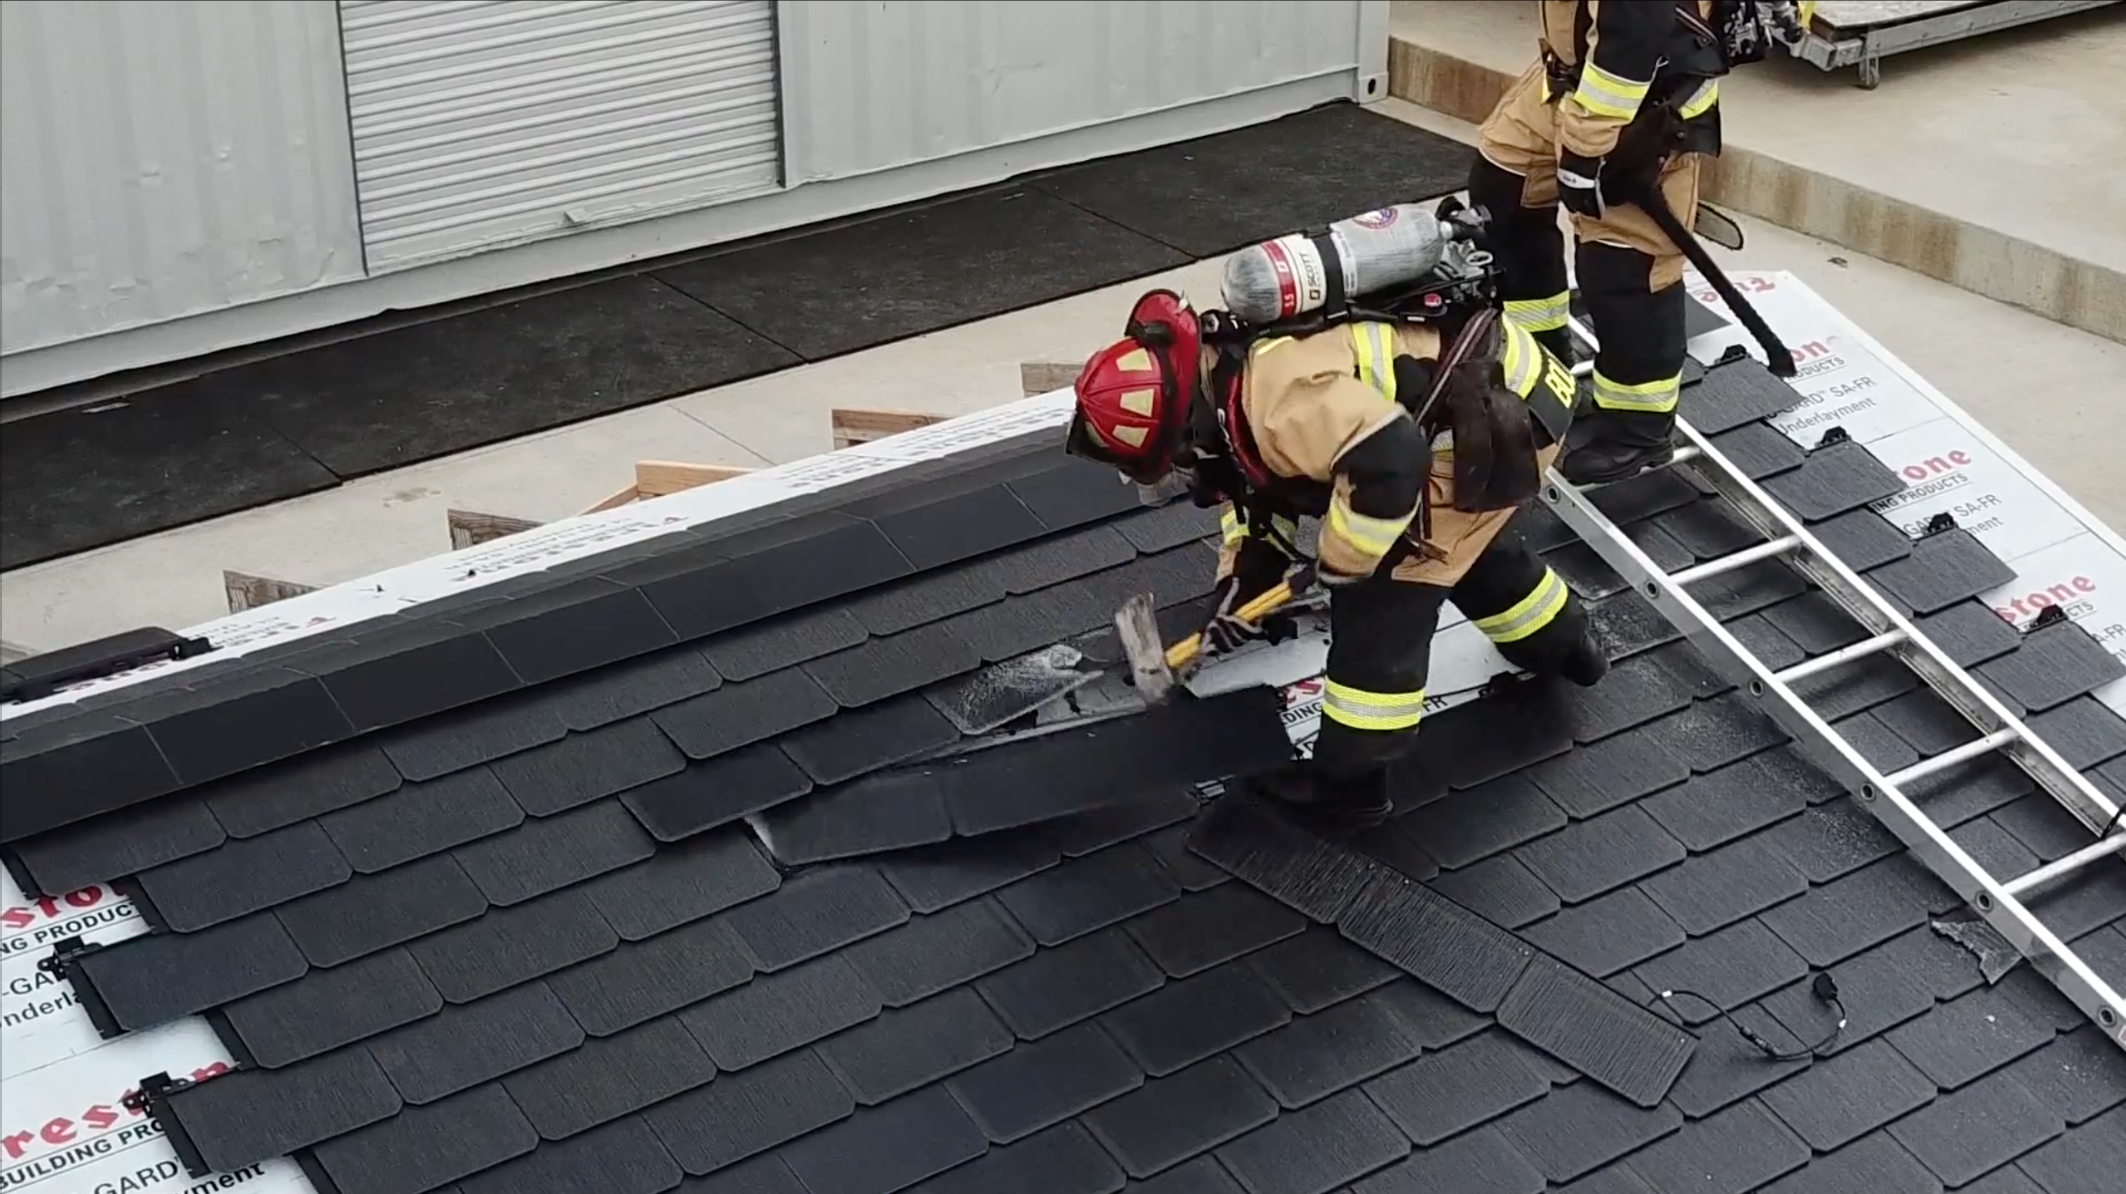 Tesla Solar Roof Firefighting Video Highlights Installation Wiring Pickup Diagrams Notably The Low Risk Of Shock Or Electrocution When Interacting With Lower Voltage Connecting Panels To Residential